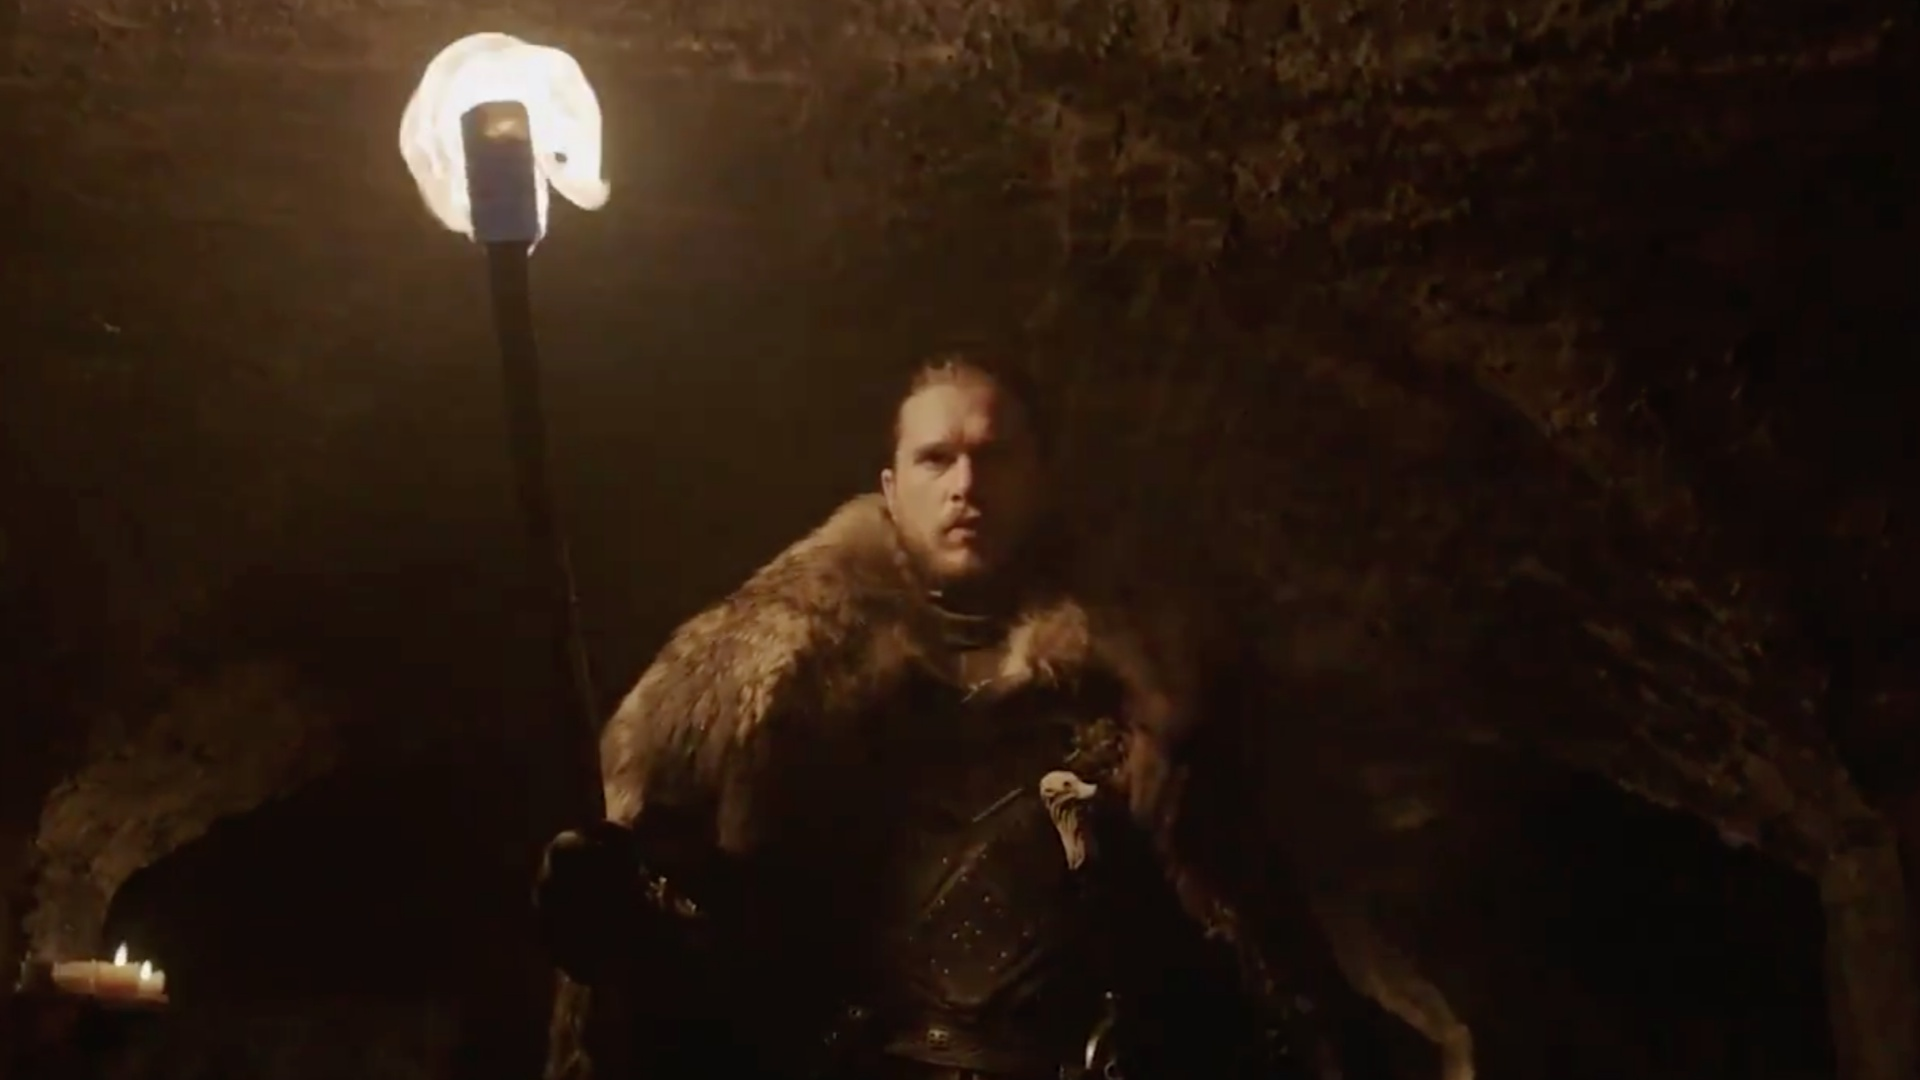 First Episode For Final Season Of Game Of Thrones Airs 14th April